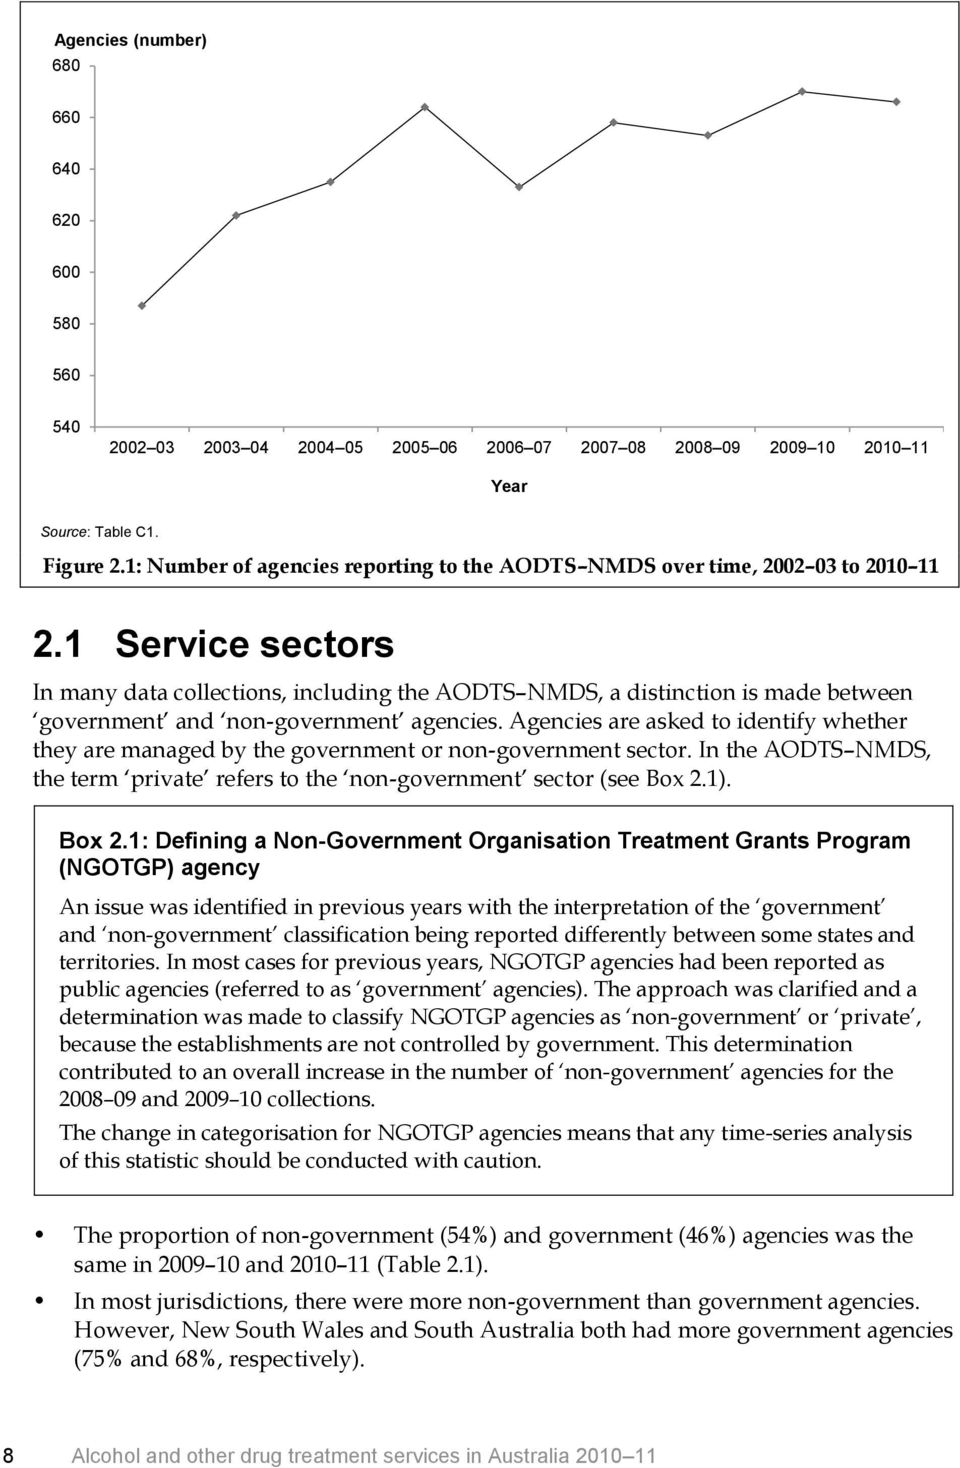 1 Service sectors In many data collections, including the AODTS NMDS, a distinction is made between government and non-government agencies.